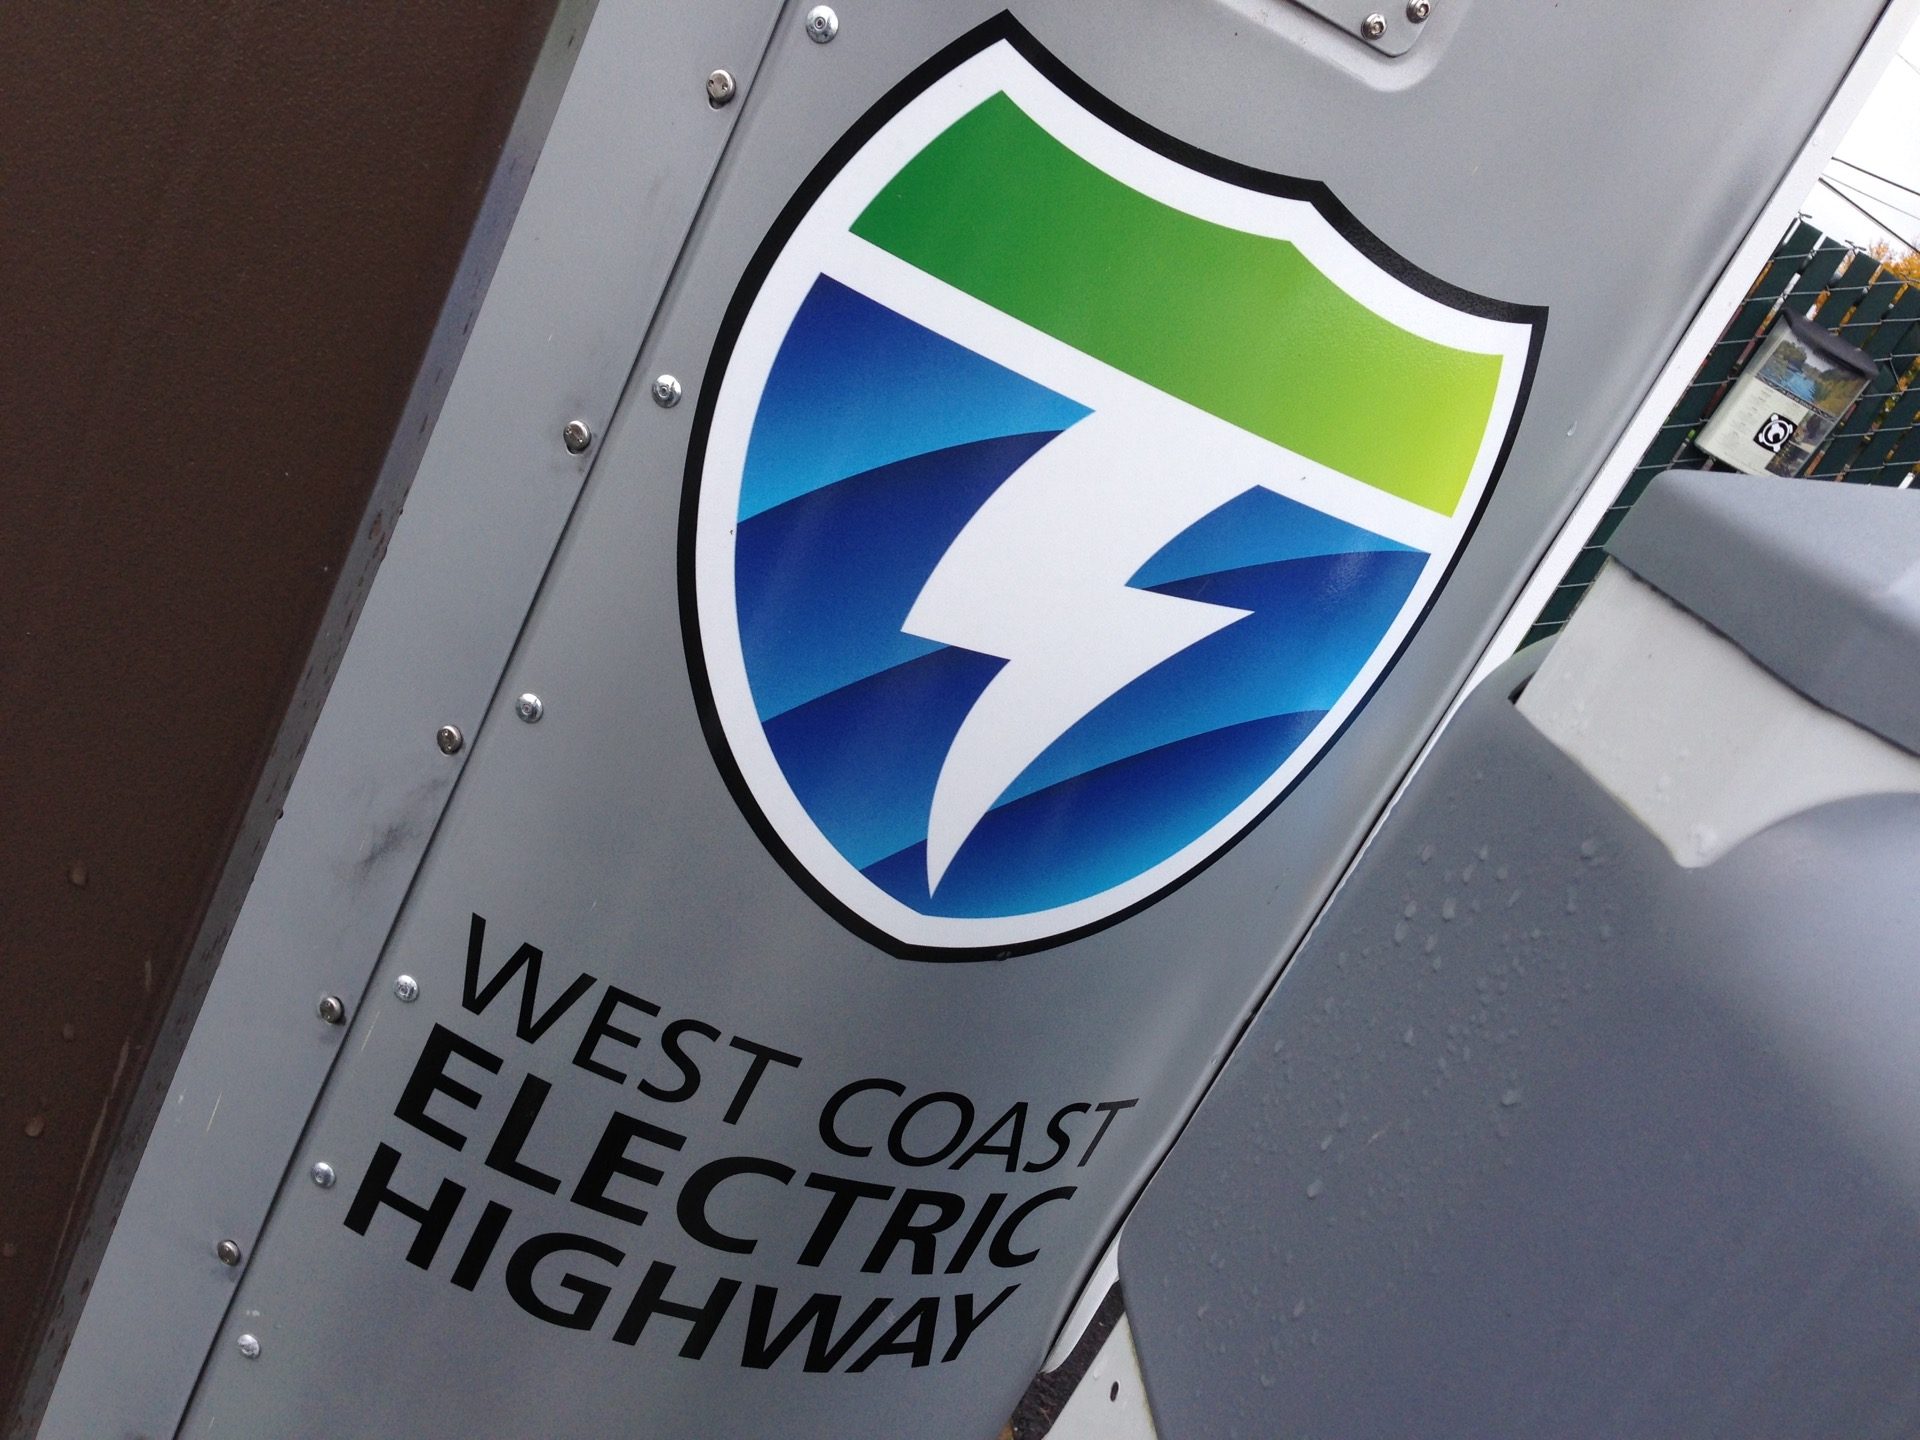 The West Coast Electric Highway is nearly 10 years old, and it's getting new charging hardware